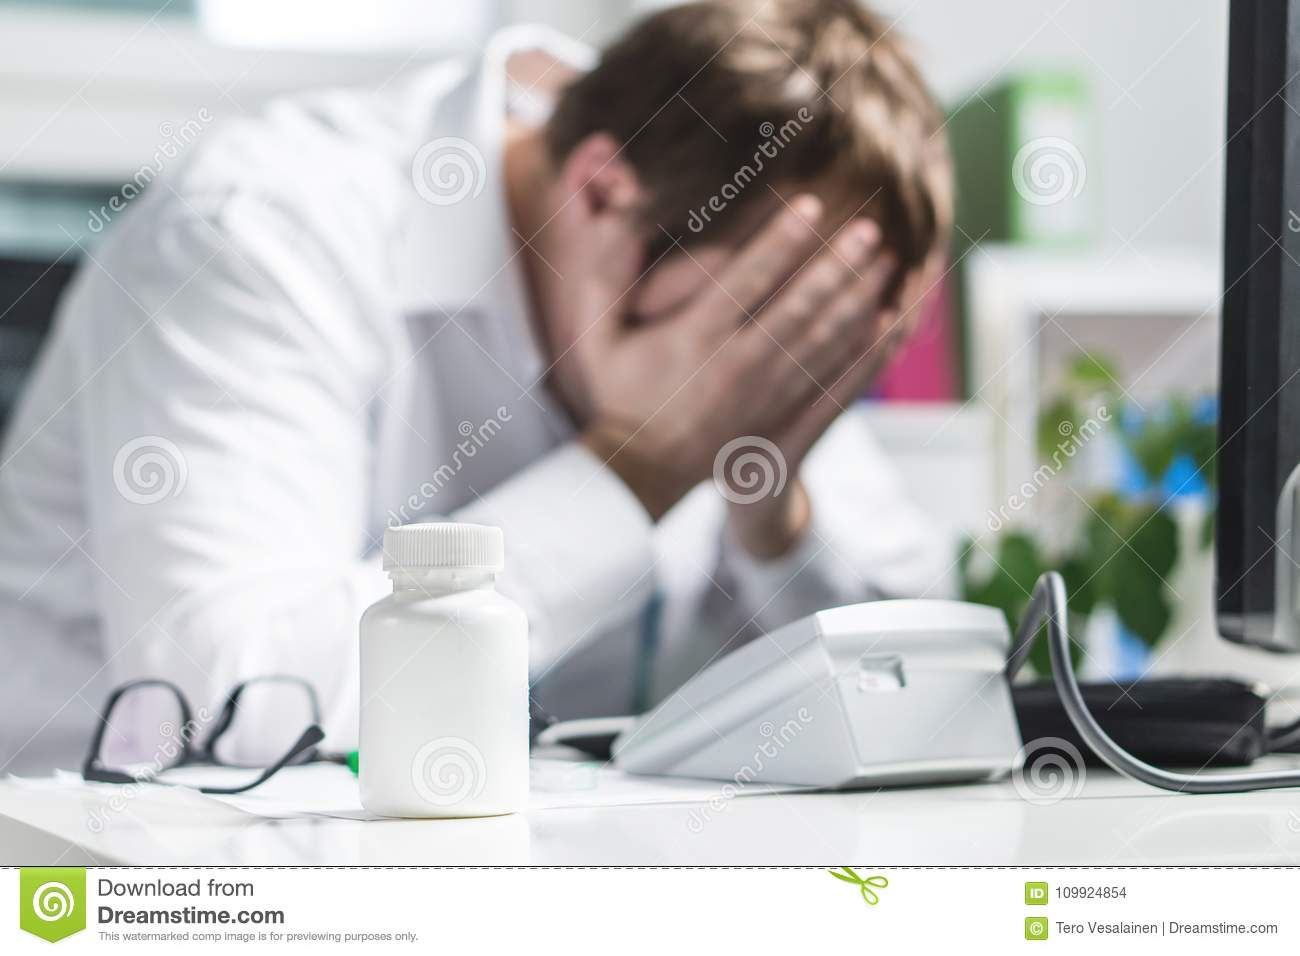 Stressed doctor cover face under pressure.